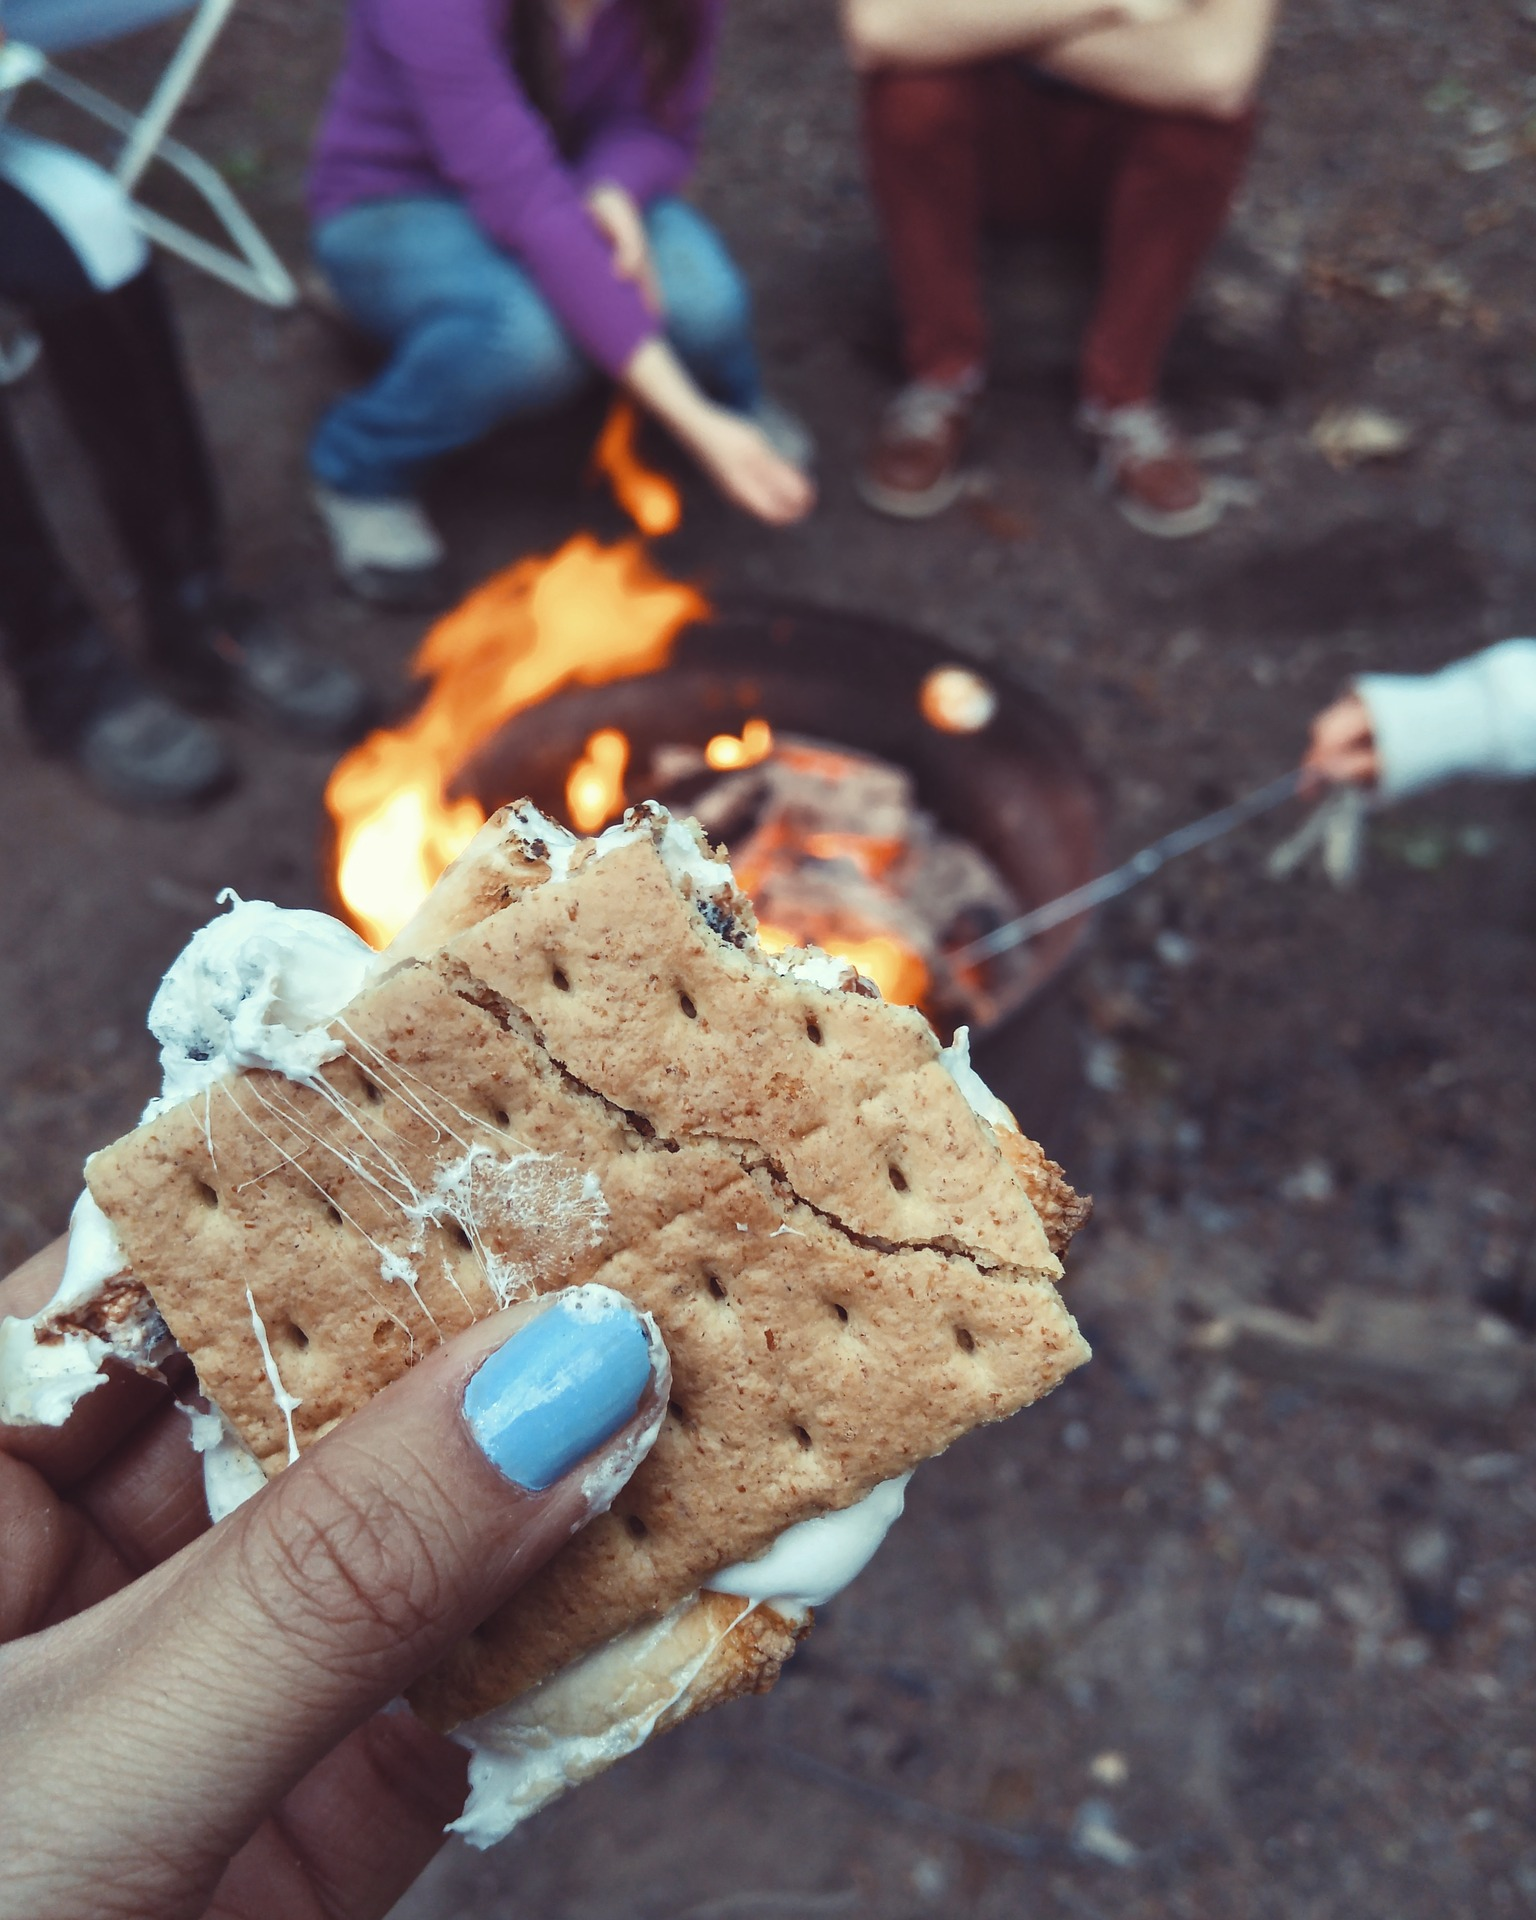 A brief history of the s'more, America's favorite campfire snack